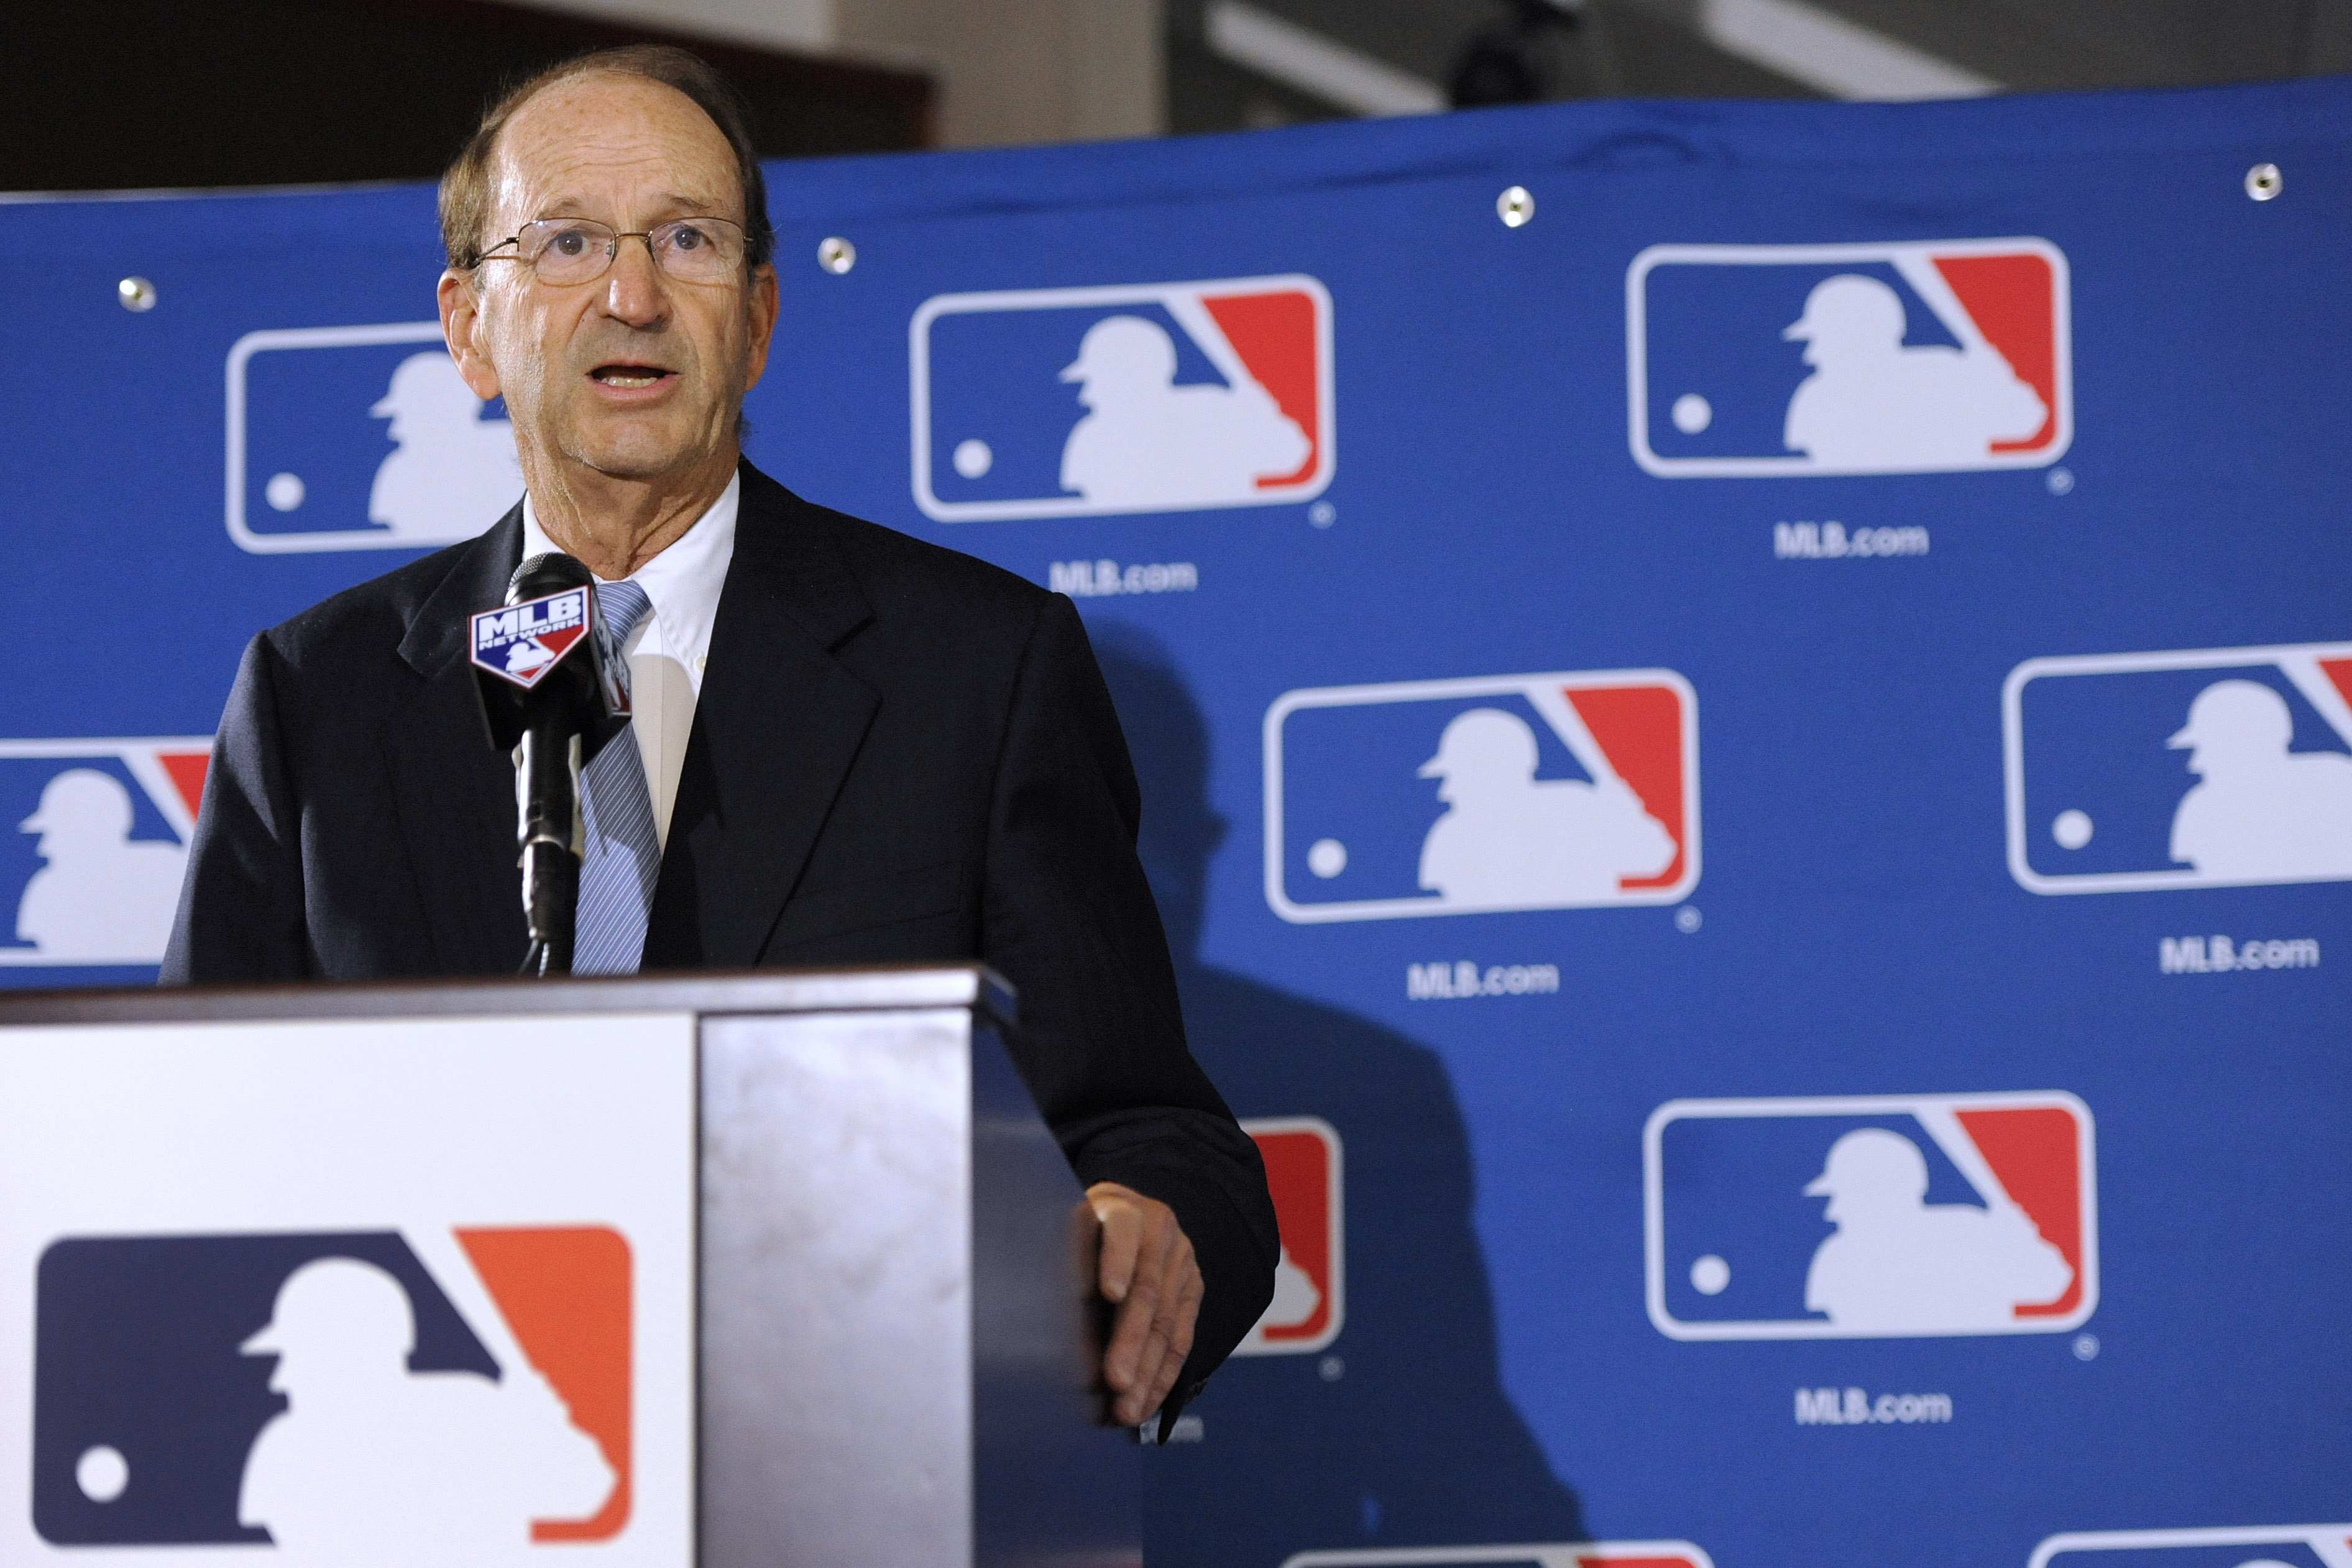 St. Louis Cardinals chairman Bill DeWitt Jr., chairman of a baseball commissioner succession committee, speaks during a news conference after team owners elected Major League Baseball Chief Operating Officer Rob Manfred, not pictured, as the next commissi